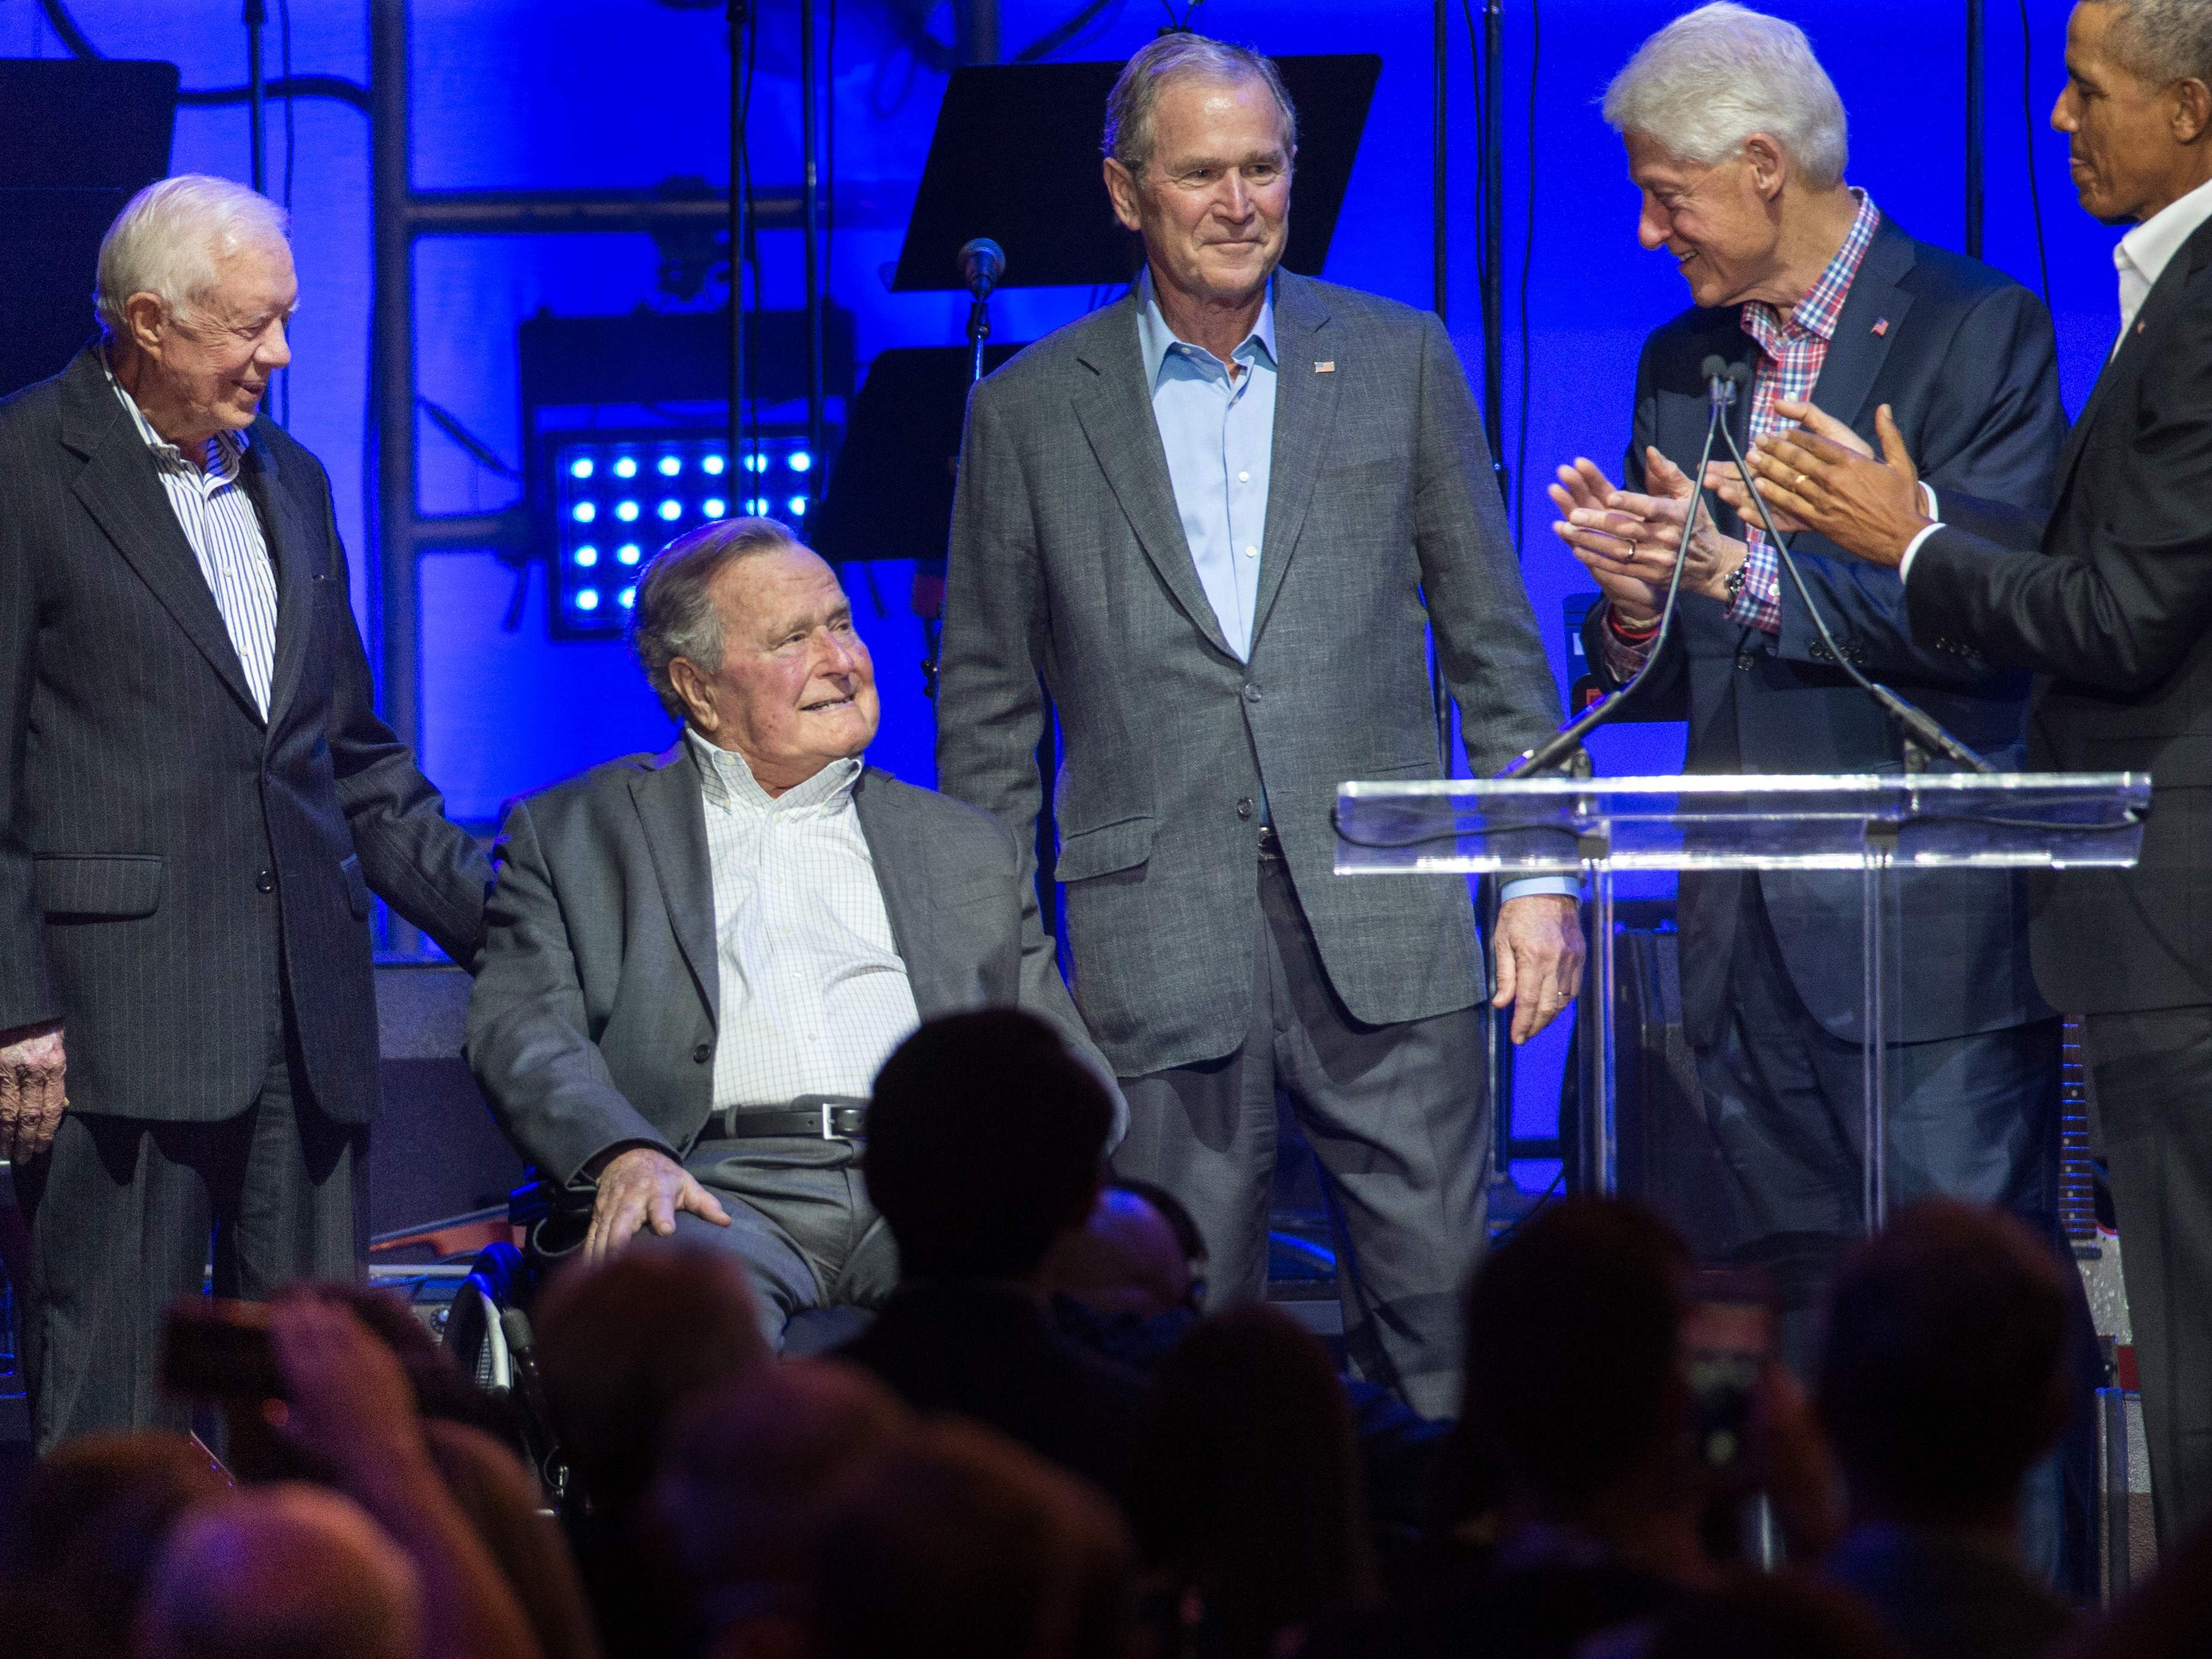 Former U.S. Presidents, from left, Jimmy Carter, George H. W. Bush, George W. Bush, Bill Clinton and Barack Obama attend the Hurricane Relief concert in College Station, Texas, Oct. 21, 2017.